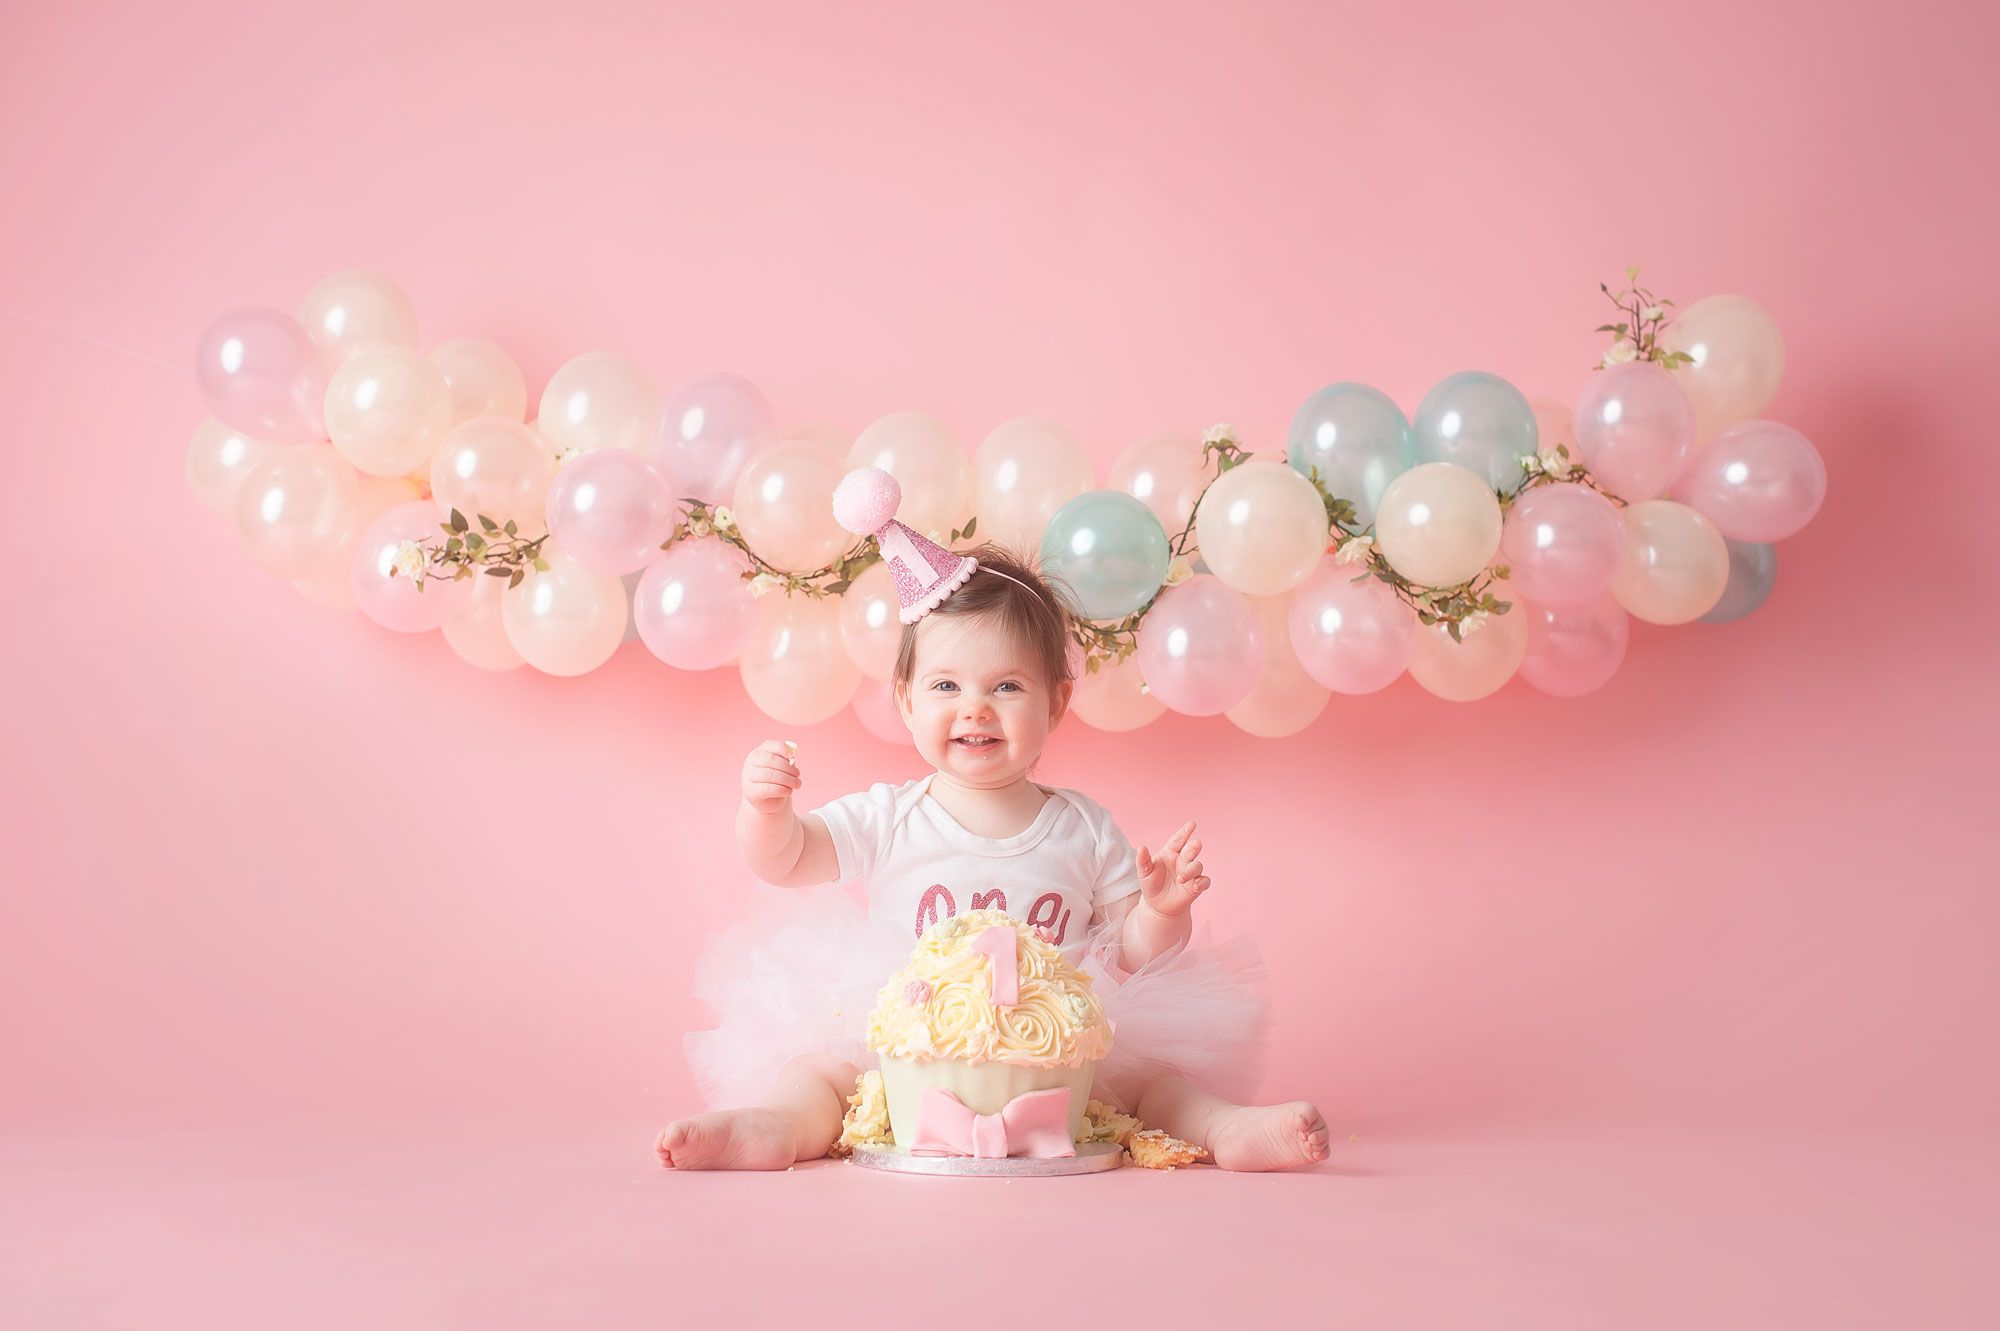 liverpool cake smash session for baby girl